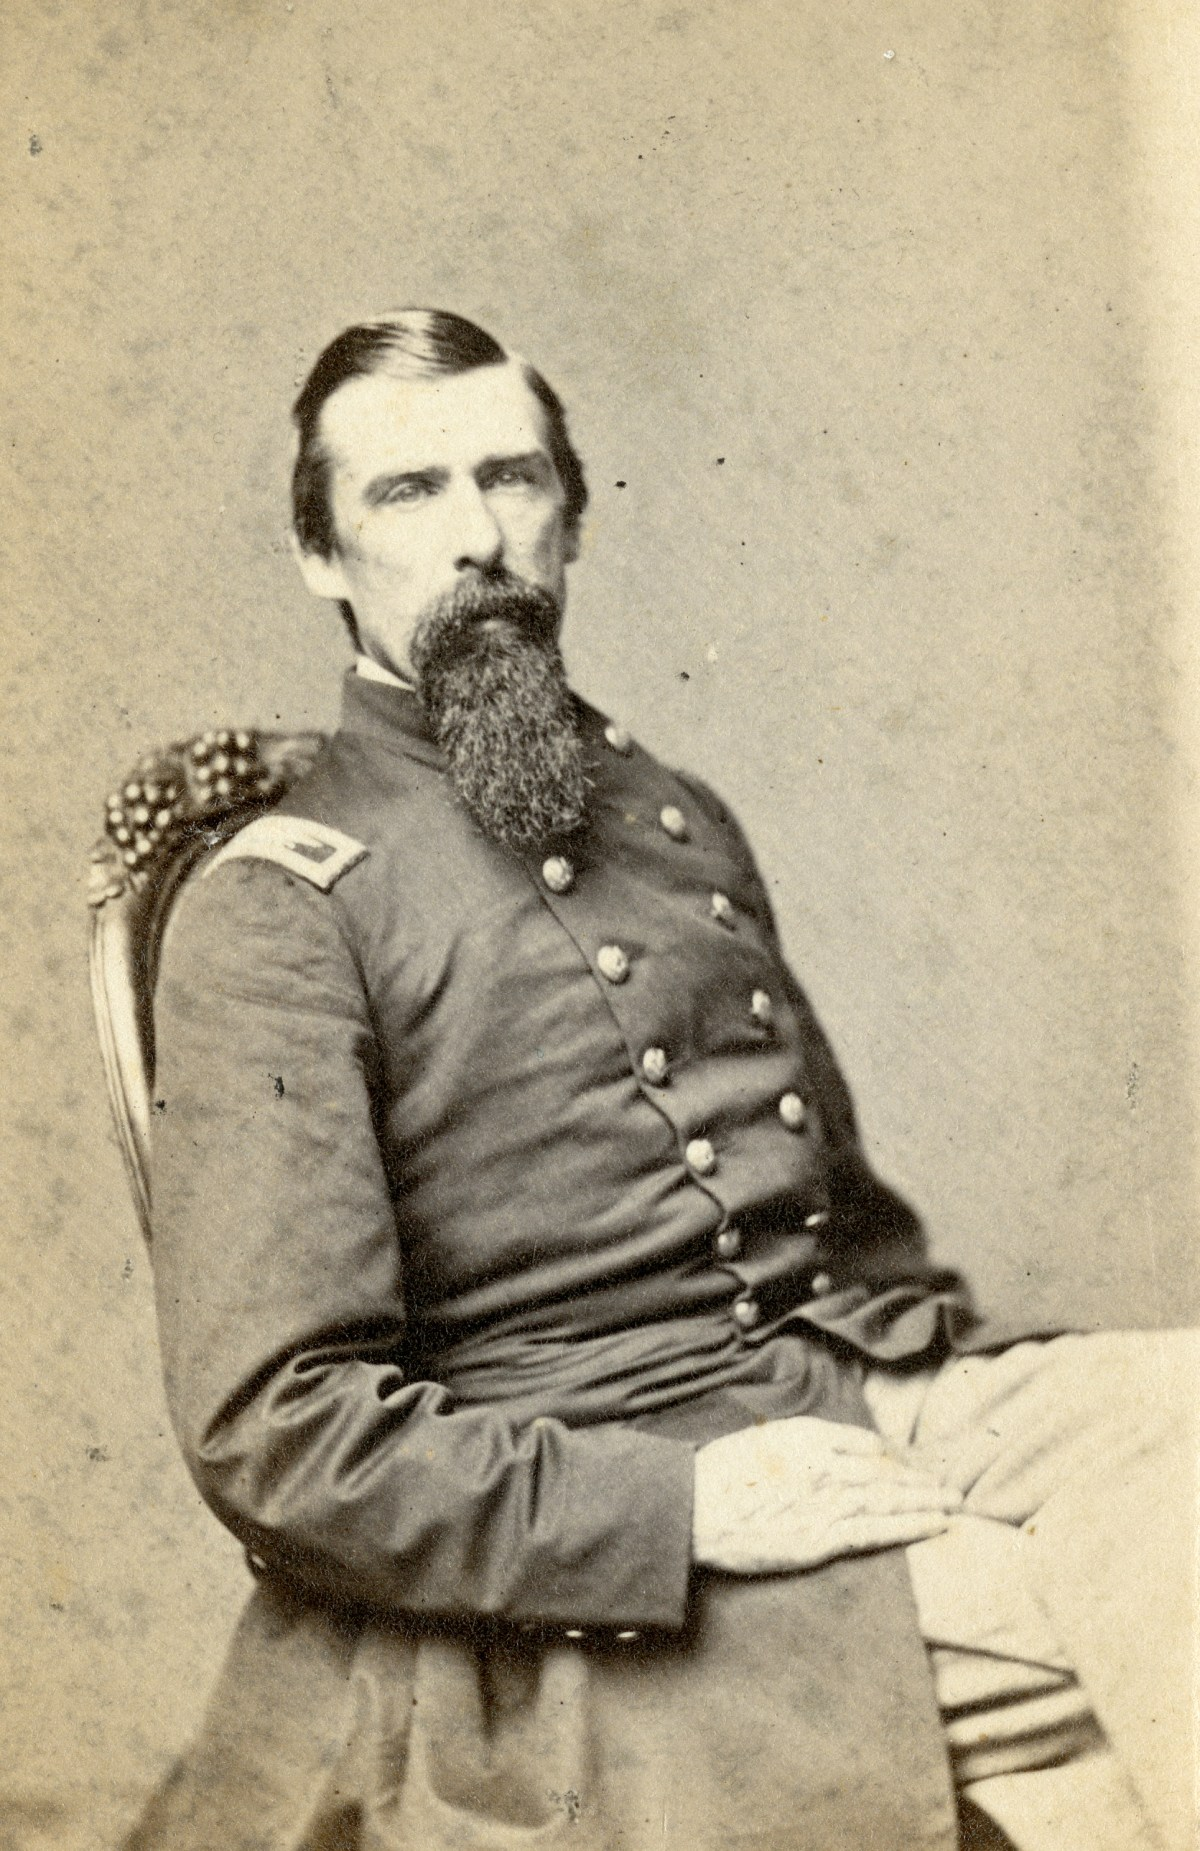 Commanding the African Brigade: A Portrait of Union Officer Edward Wild